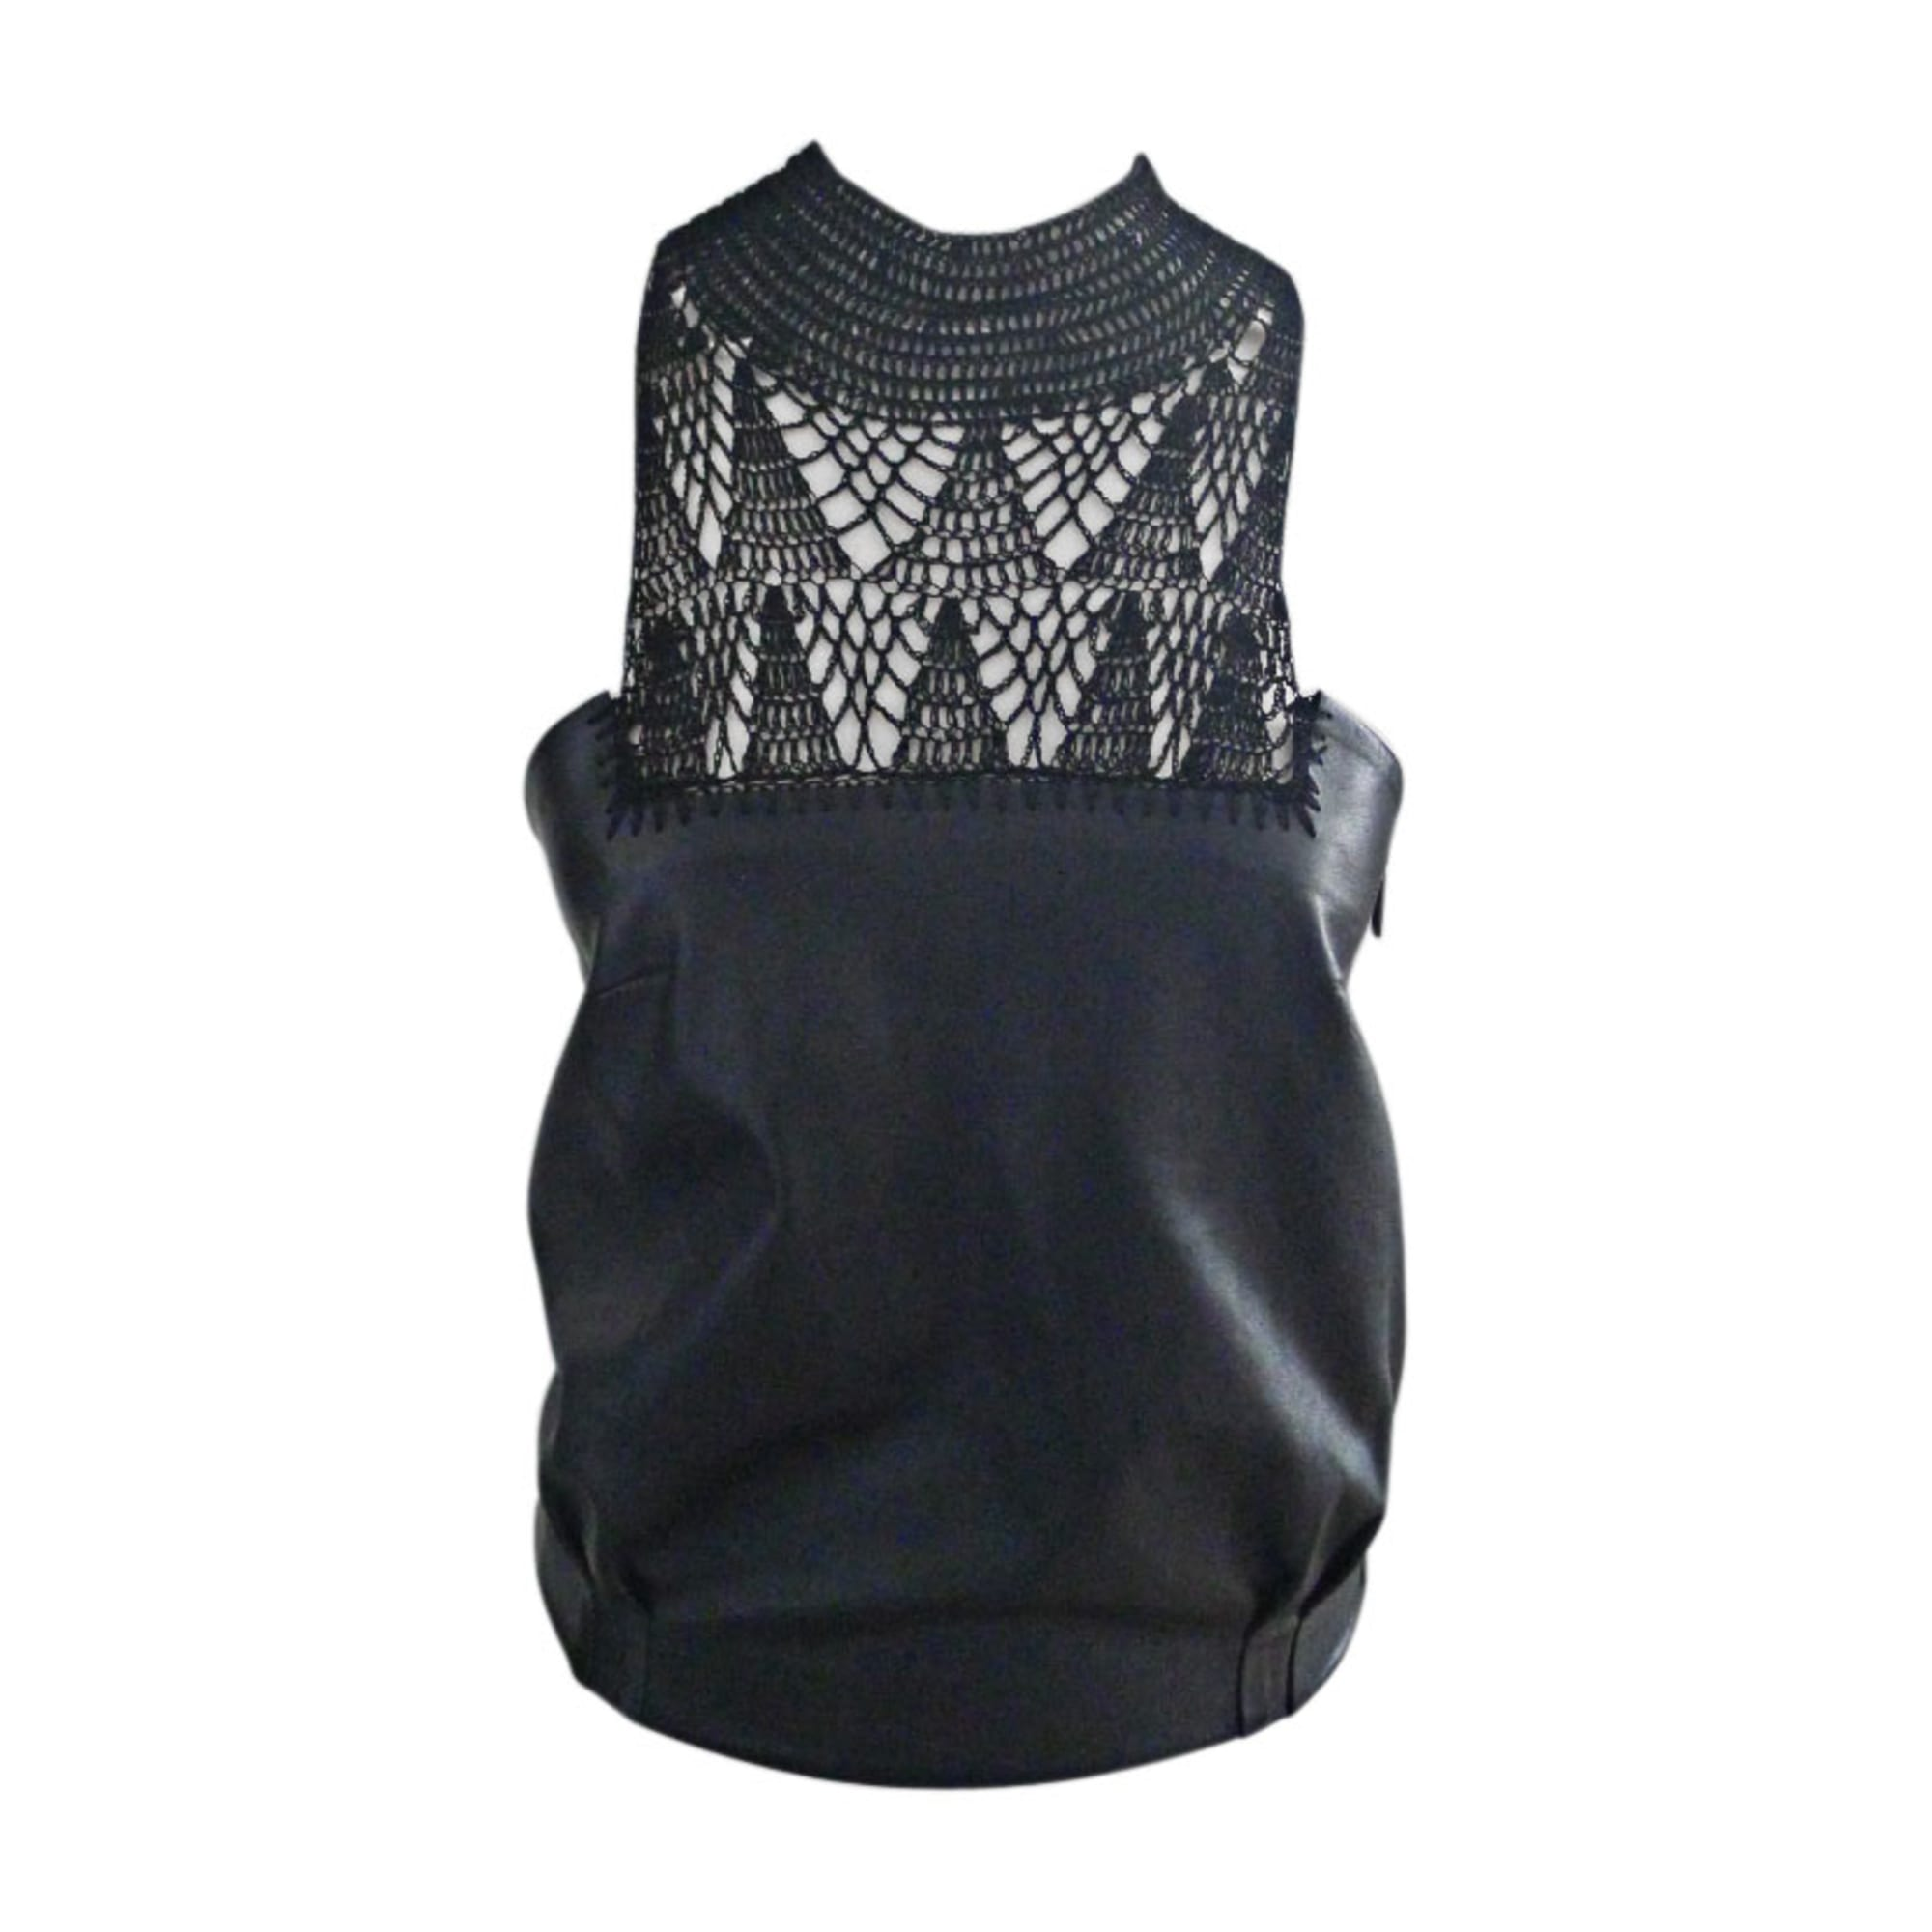 Top, tee-shirt BARBARA BUI Noir